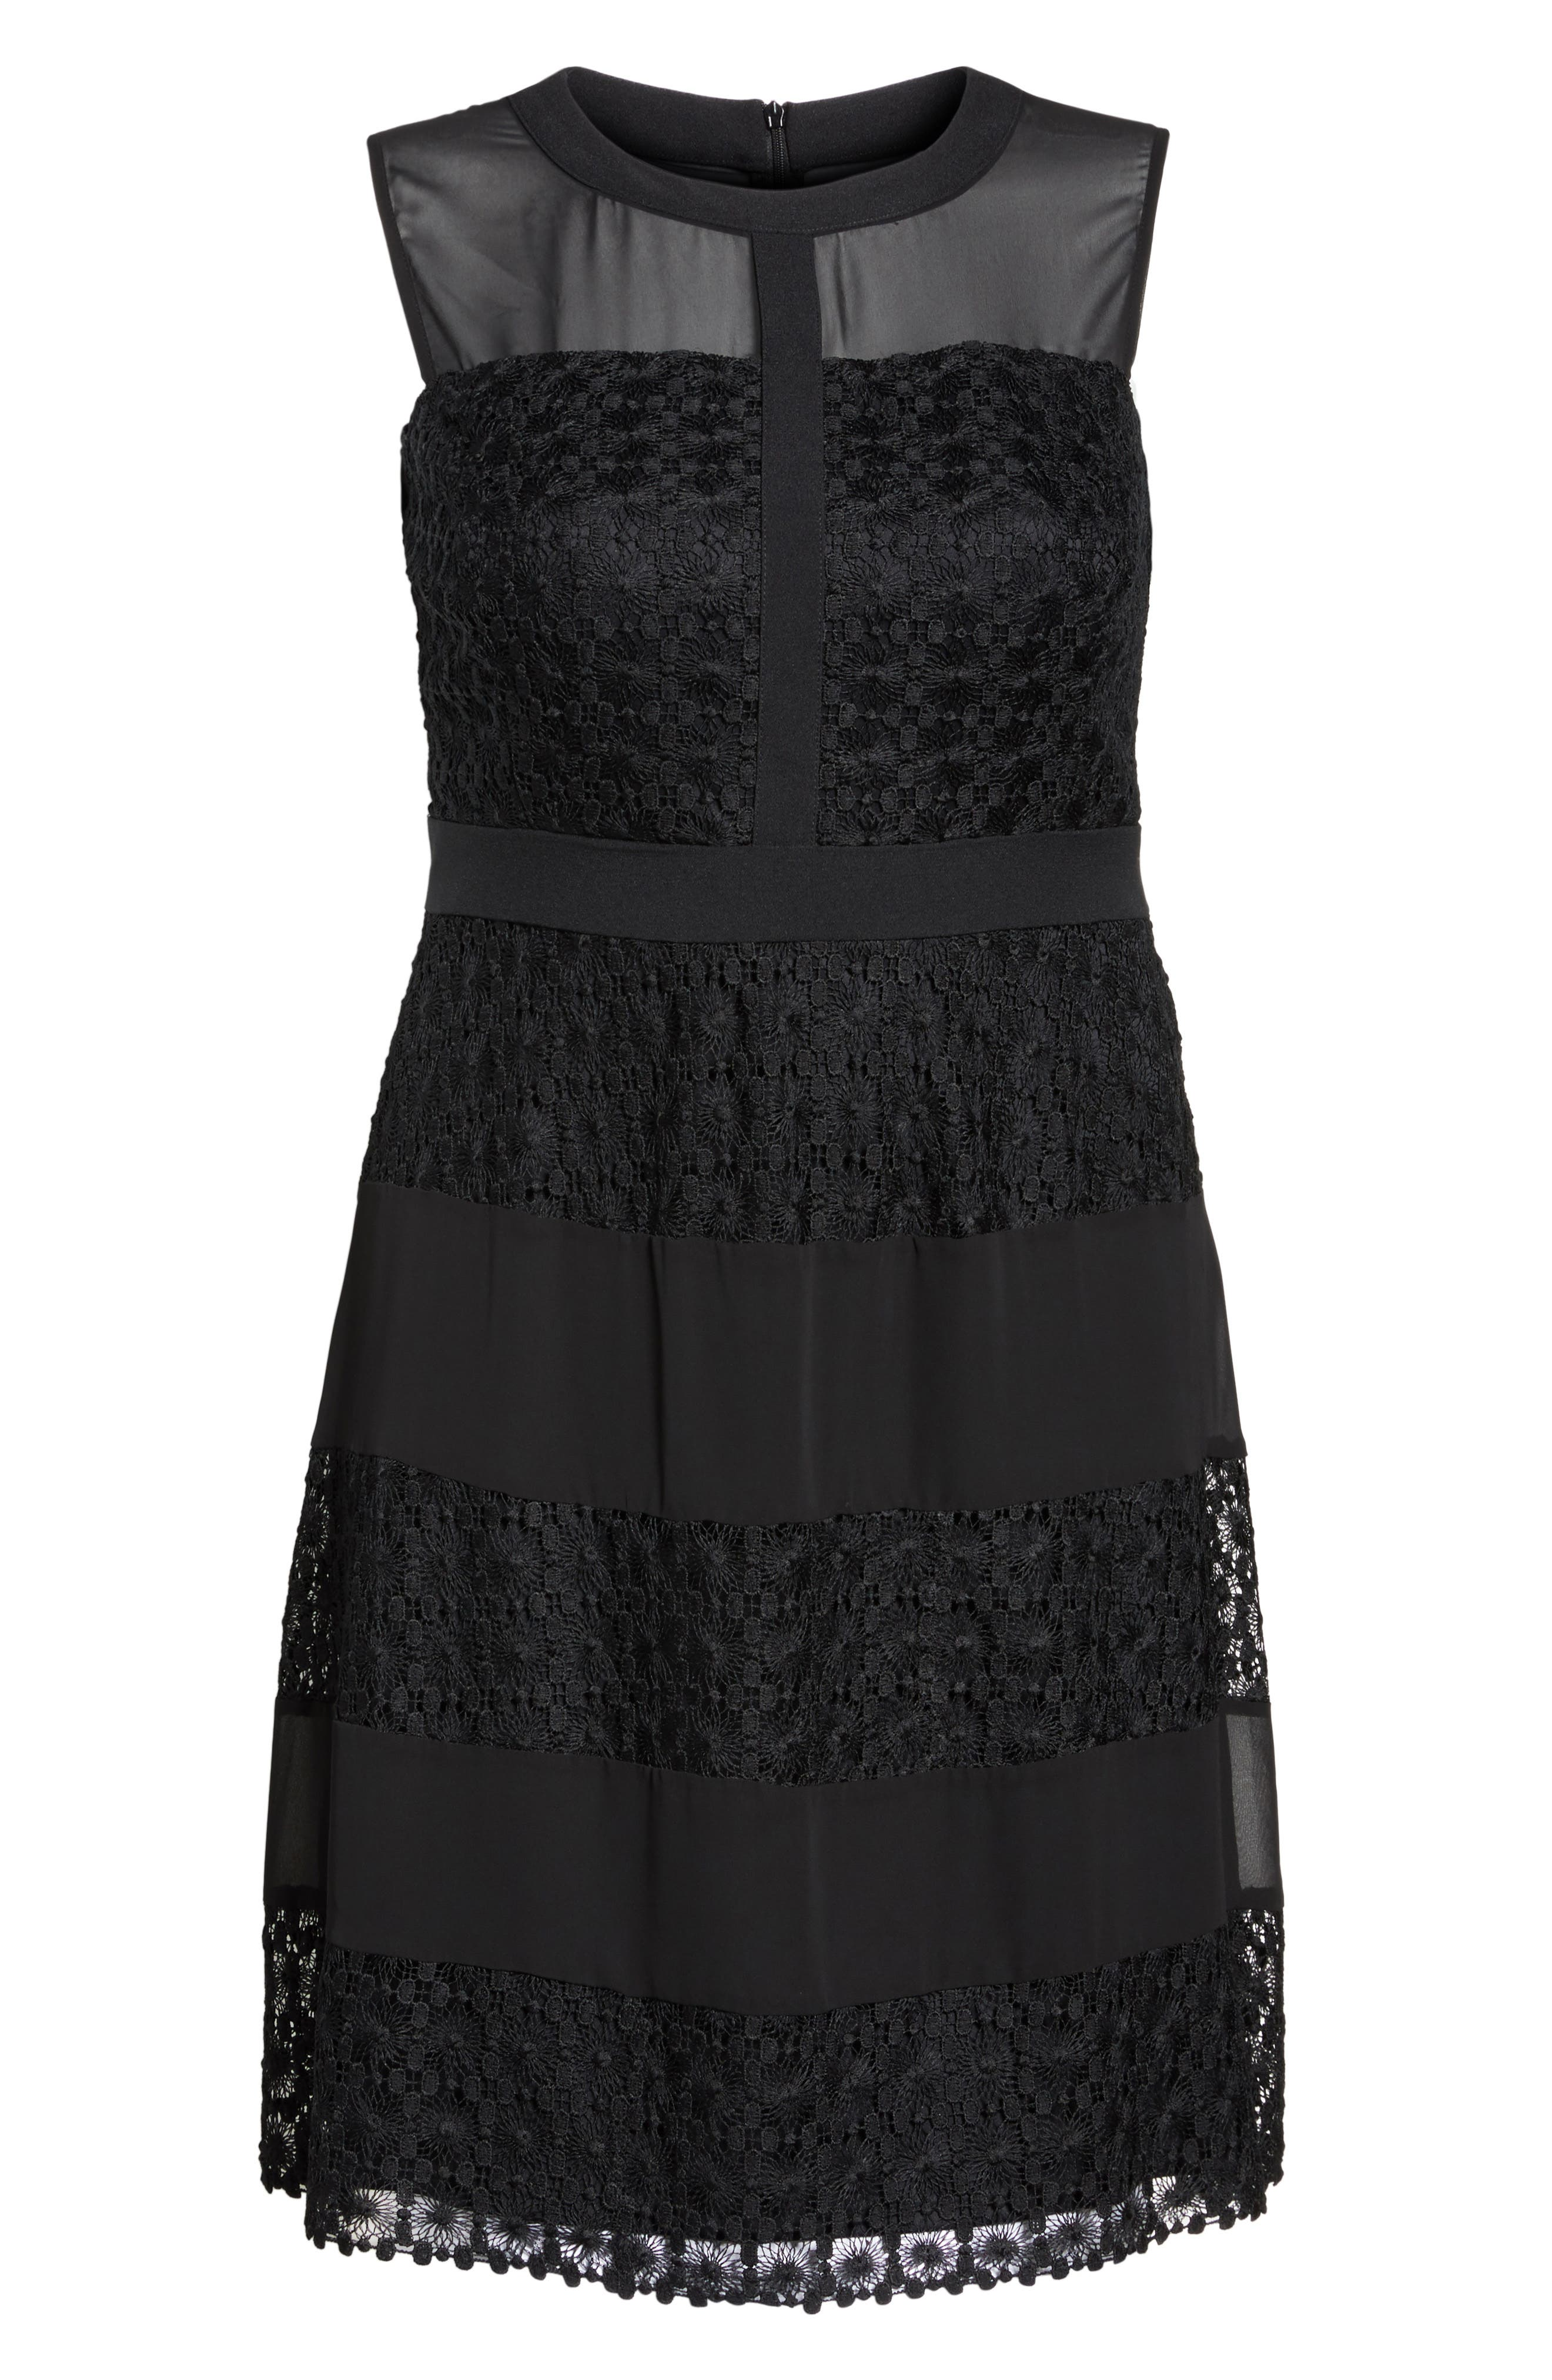 London Time Geo Galaxy Lace Fit & Flare Dress,                             Alternate thumbnail 6, color,                             001